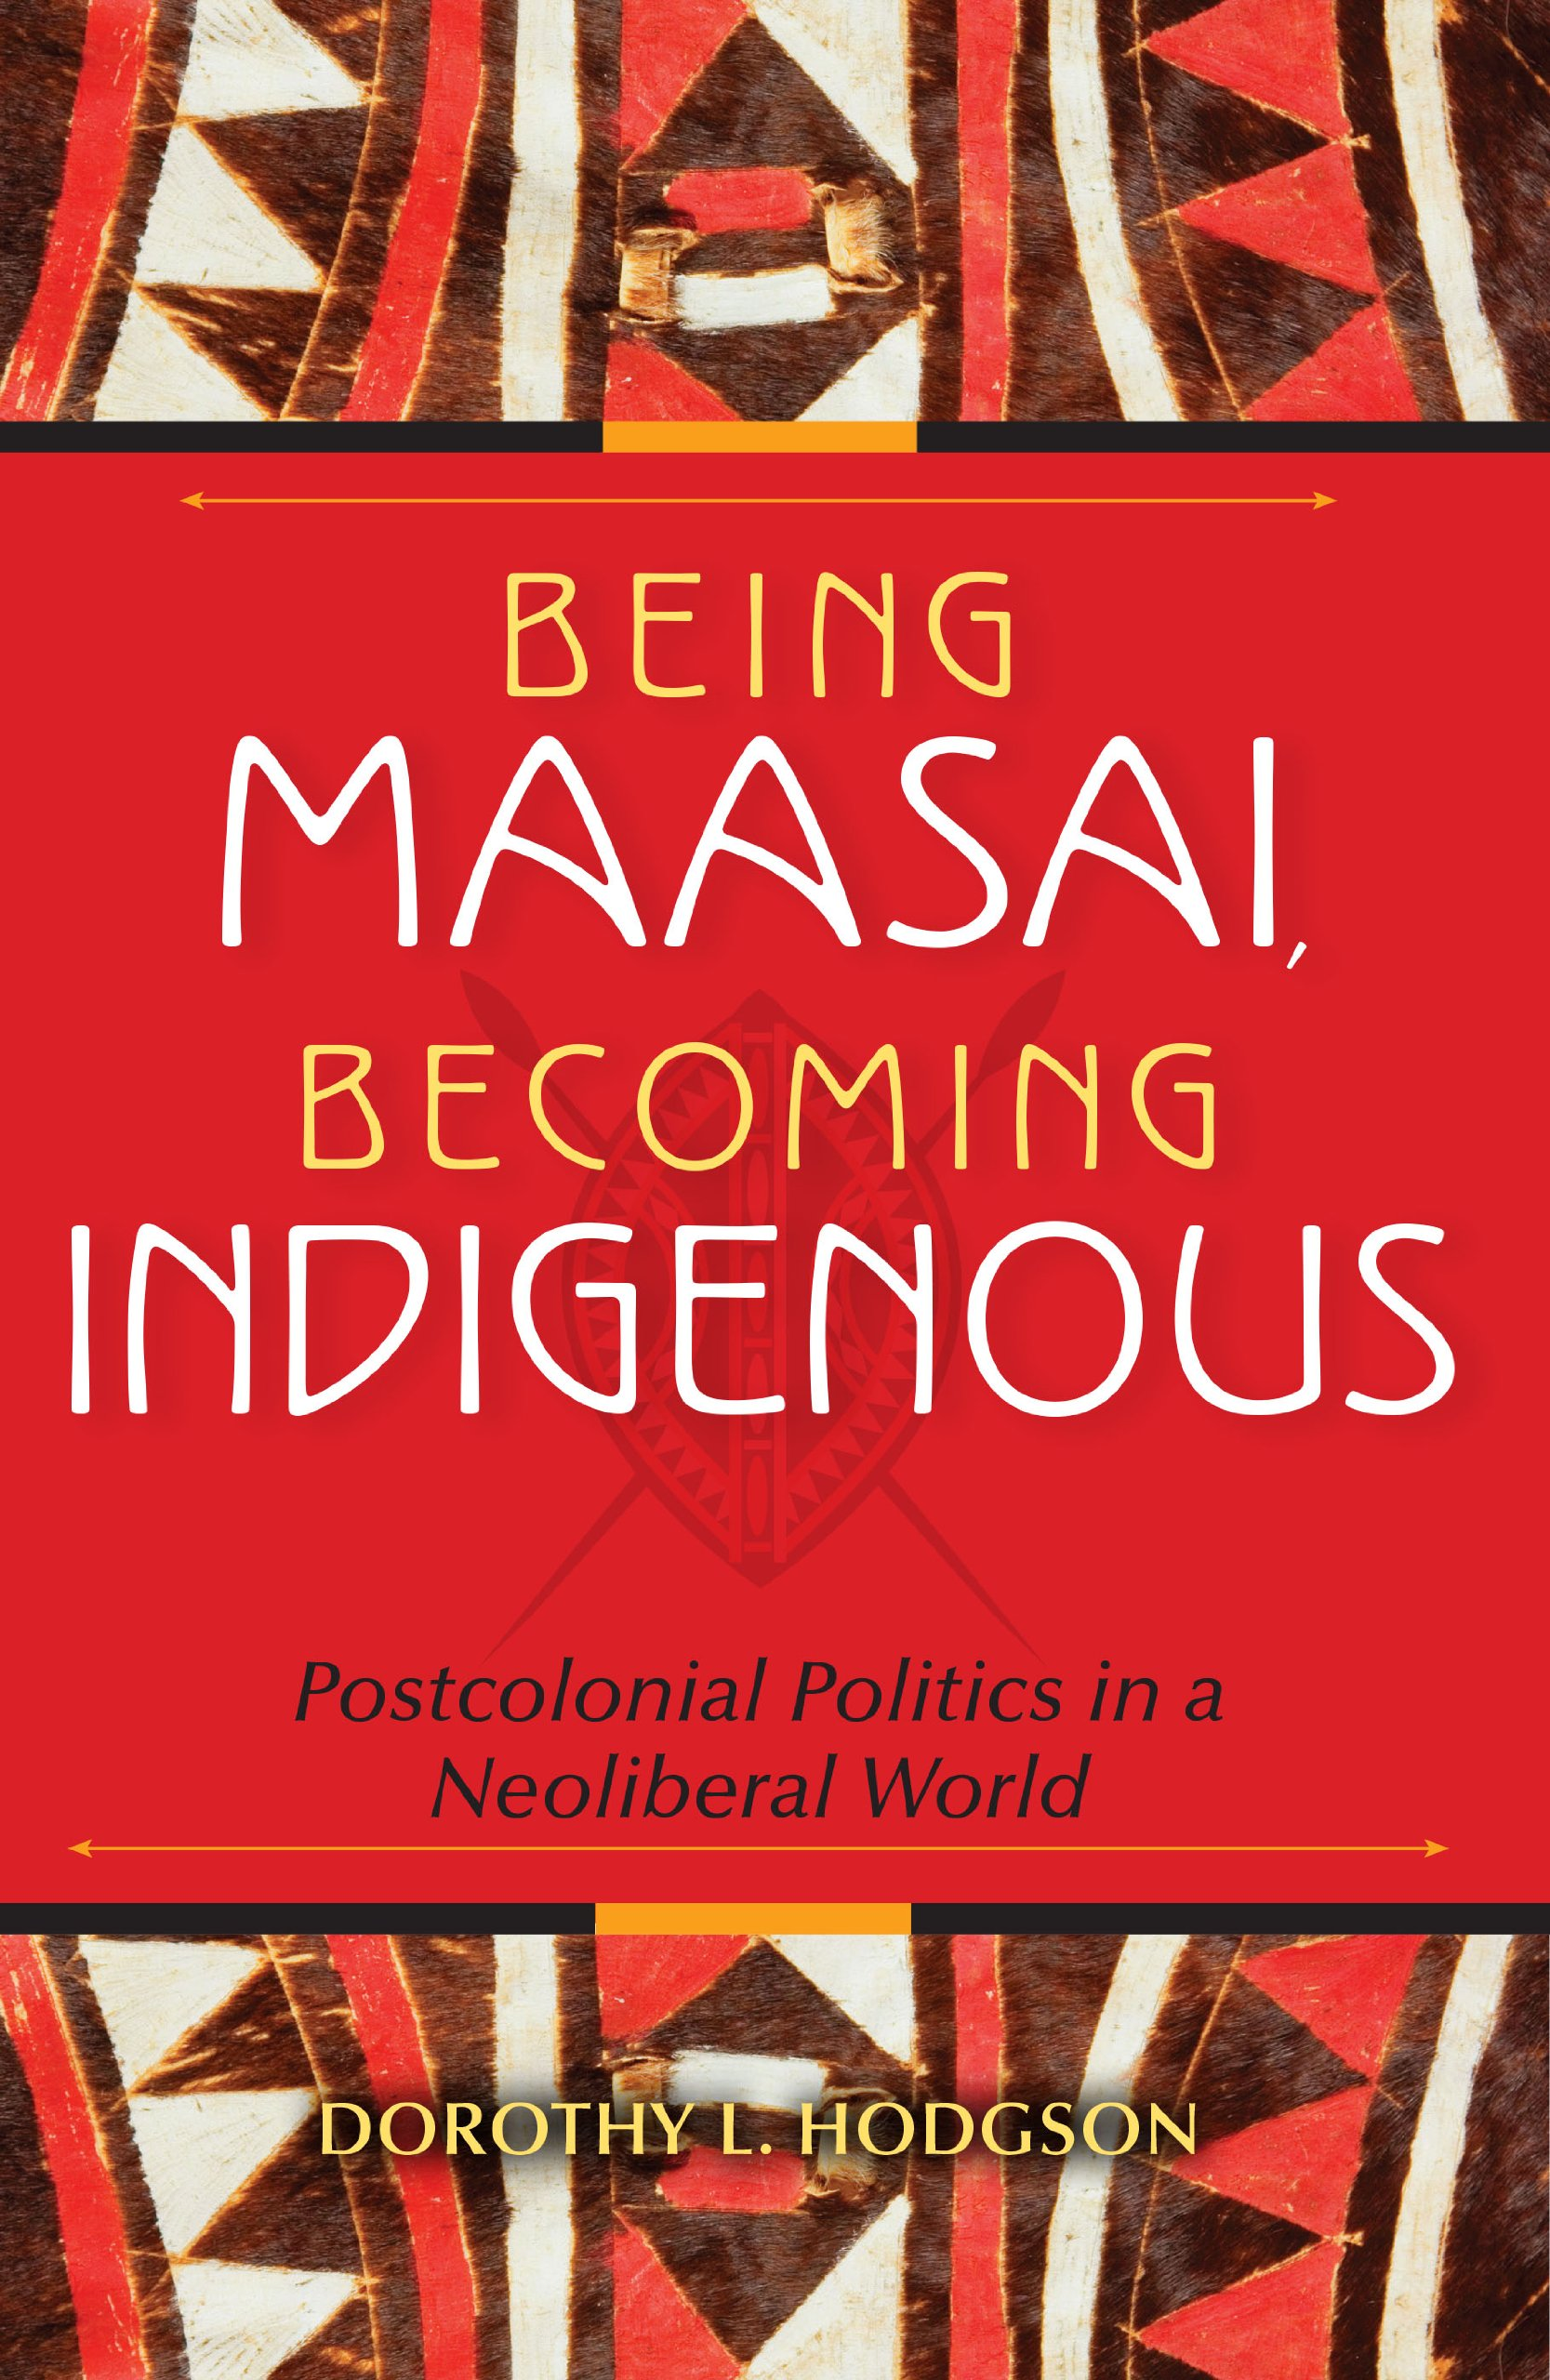 Being Maasai, Becoming Indigenous: Postcolonial Politics in a Neoliberal  World: Dorothy L. Hodgson: 9780253223050: Amazon.com: Books